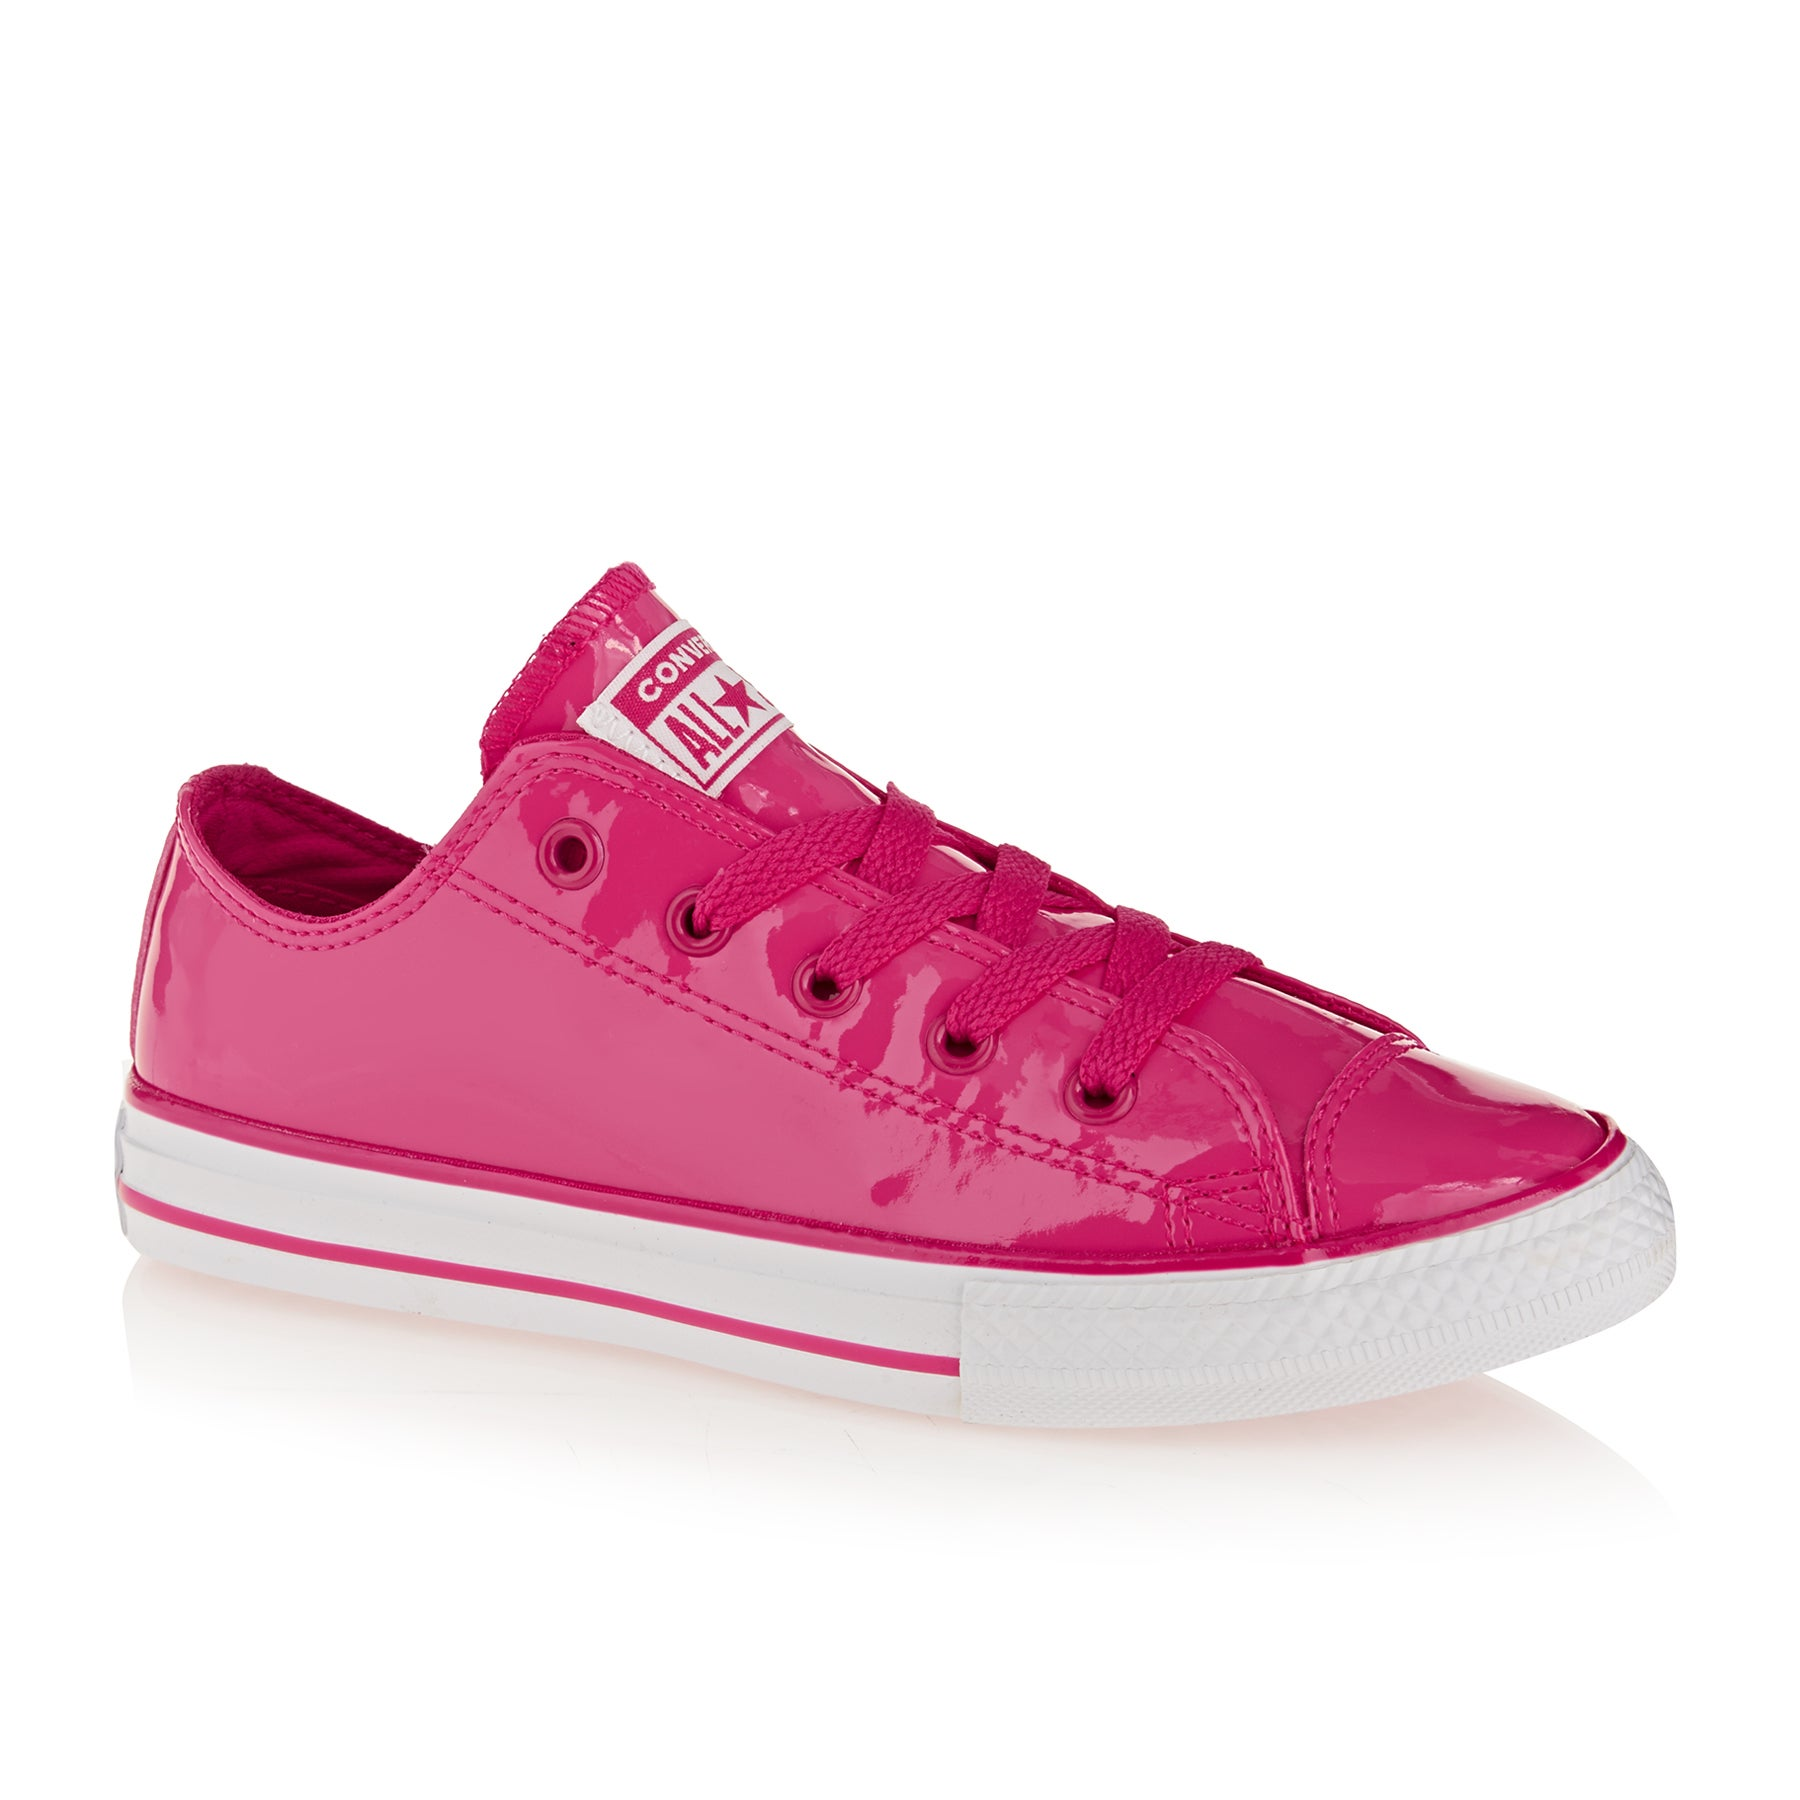 Converse Chuck Taylor All Stars OX Kids Shoes - Pink Pop Pink Pop White